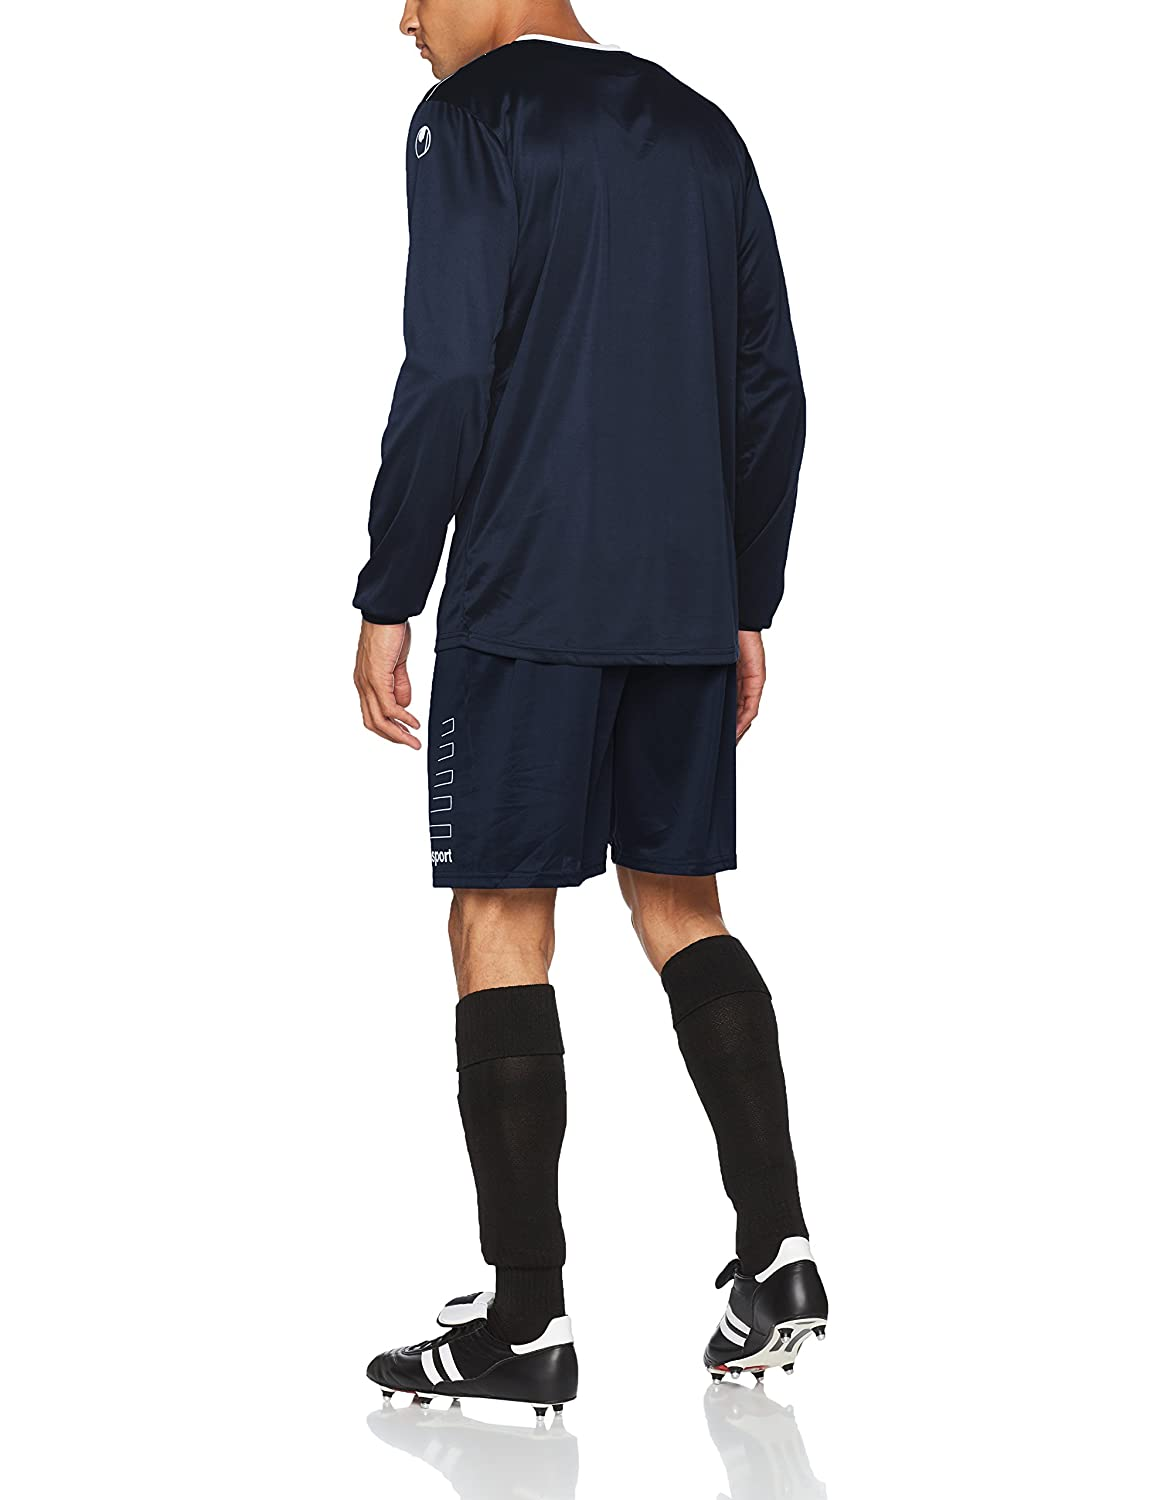 Talla Uhlsport Color Azul Match Team Kit L//S